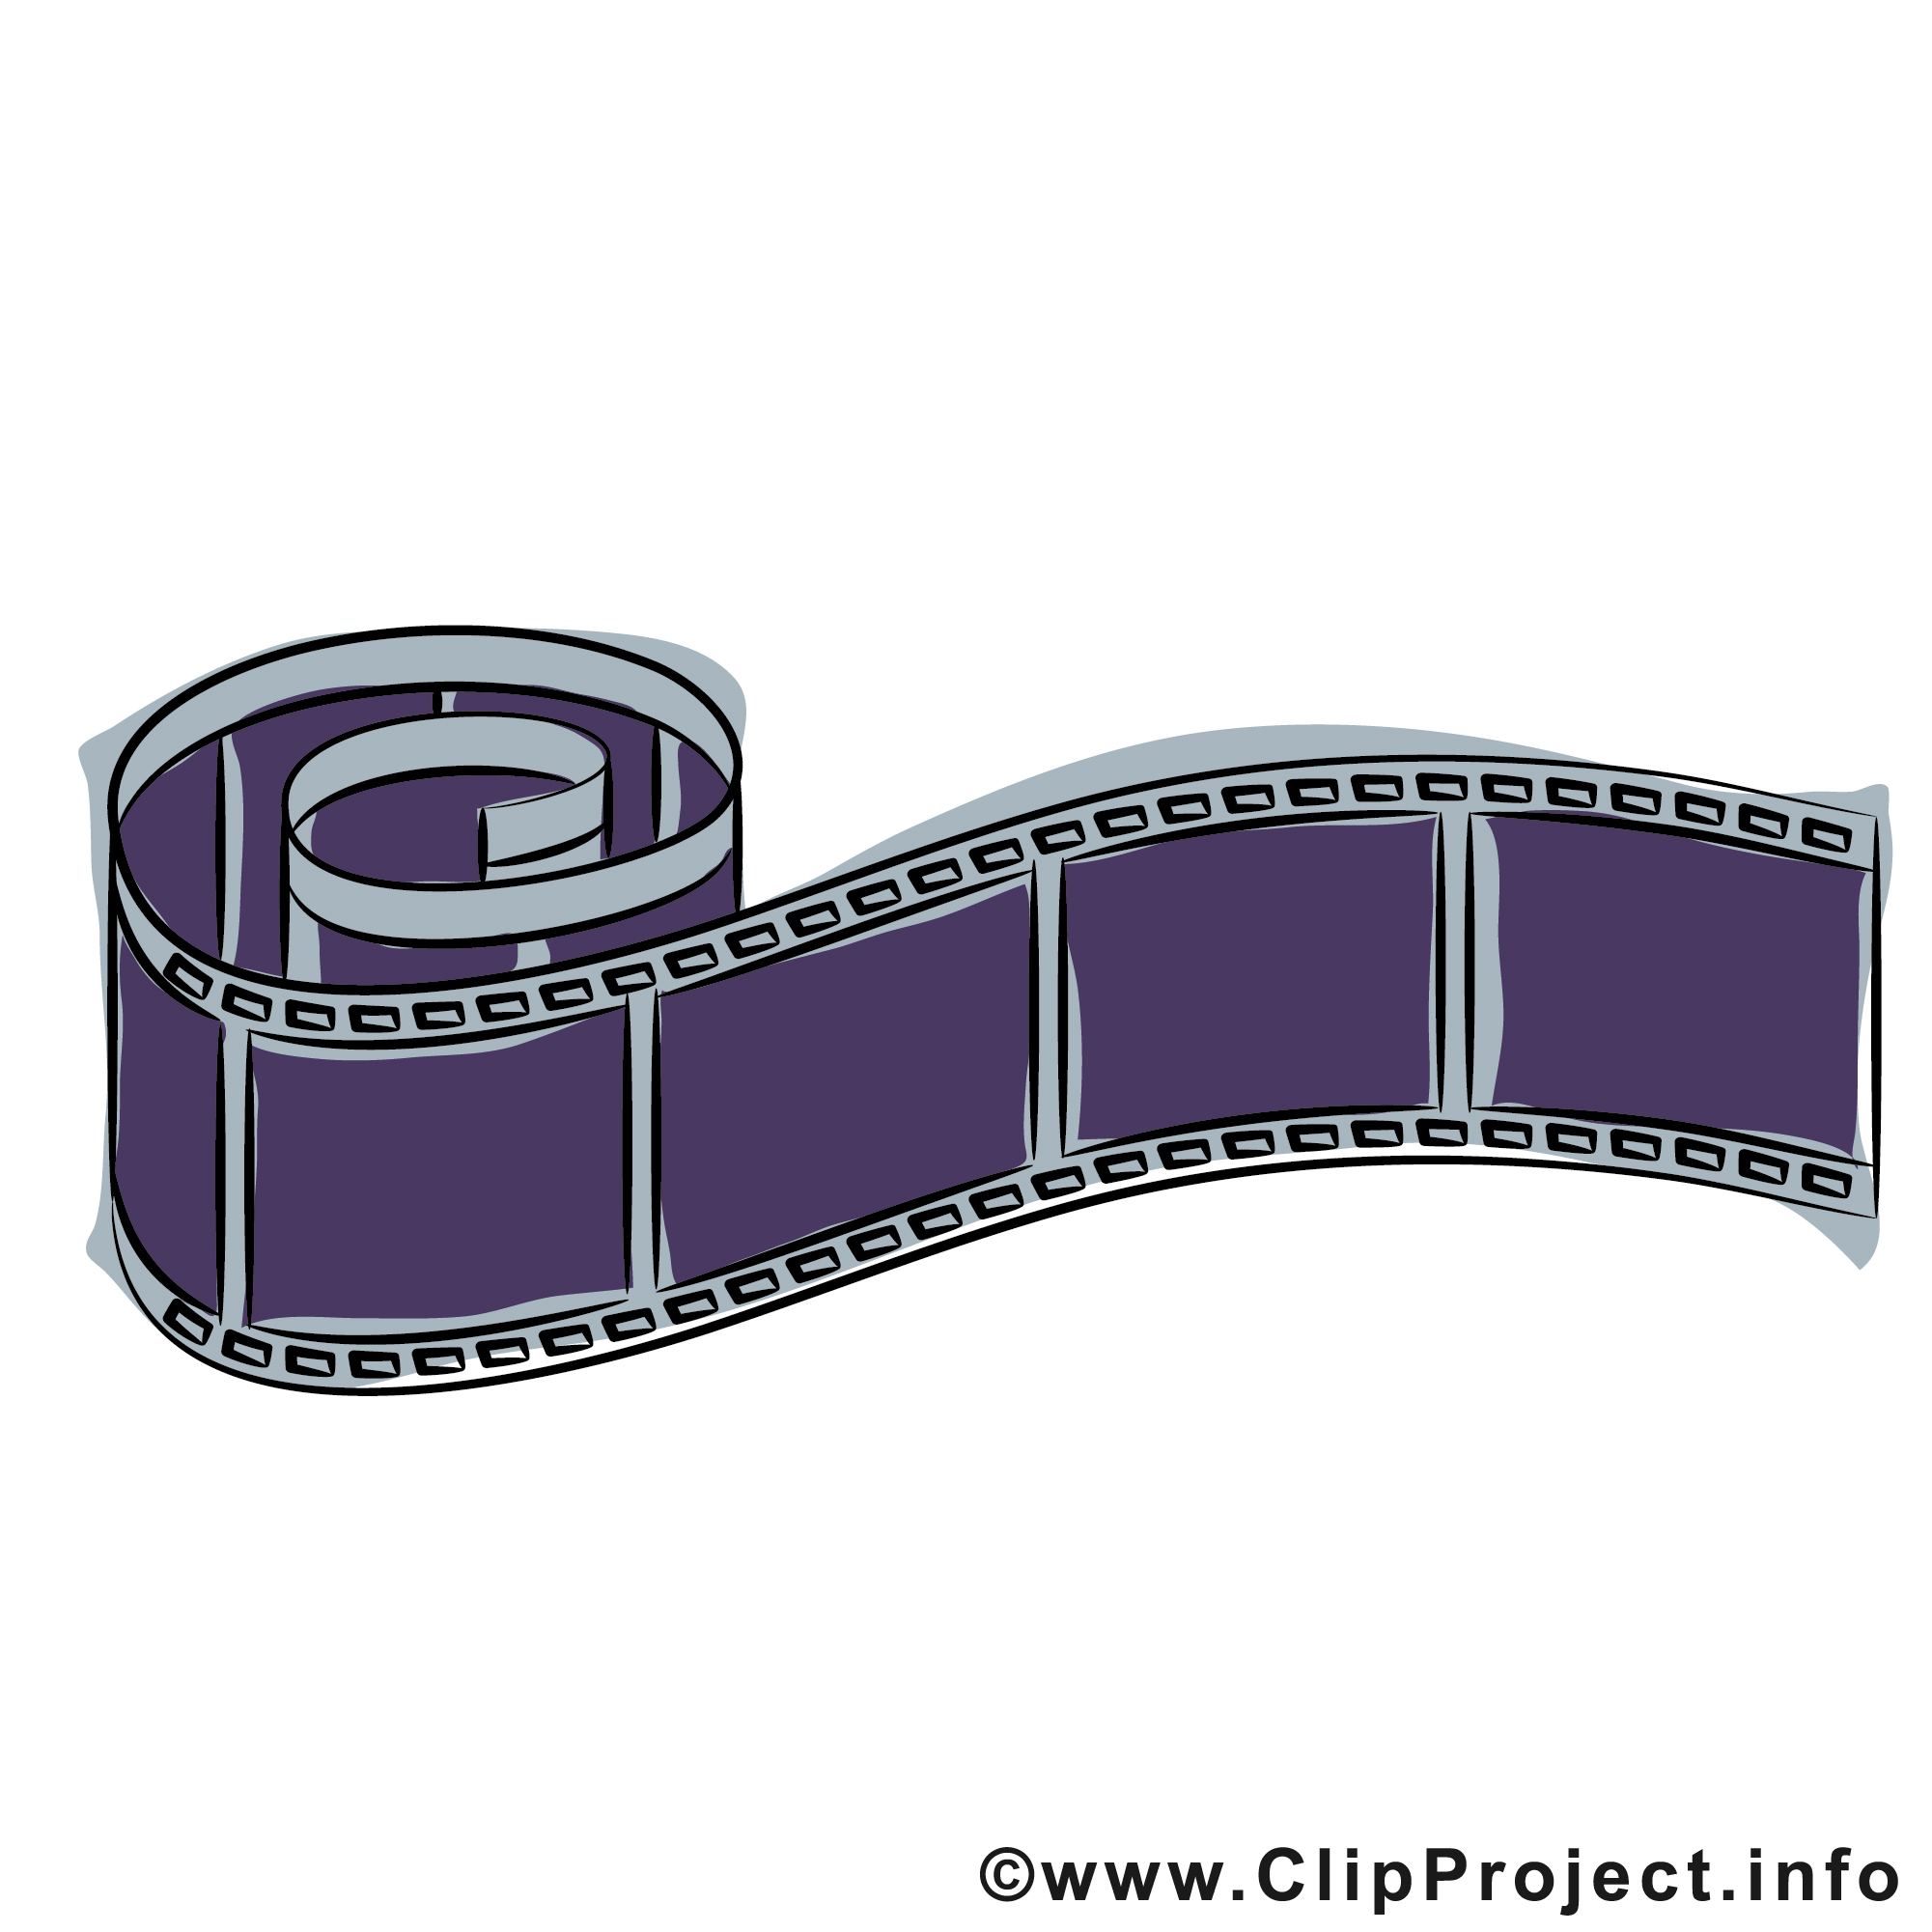 Pellicule dessin film cliparts t l charger divers - Clipart cinema gratuit ...